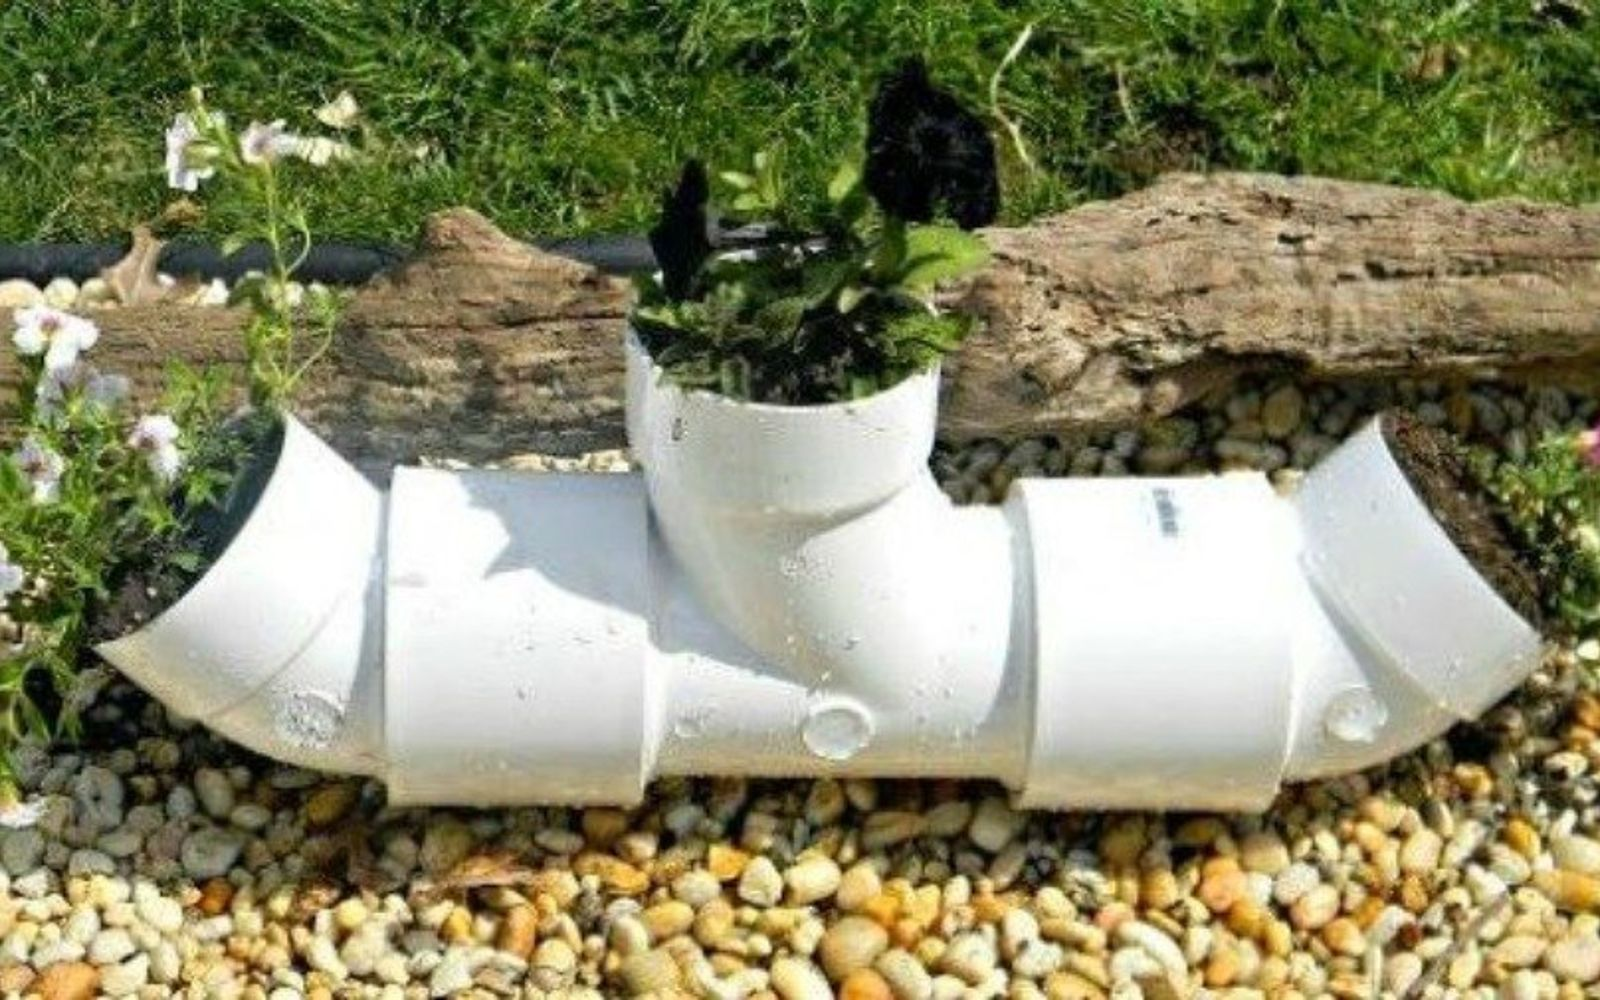 s the 15 coolest ways to reuse pipes in your home decor, Plant flowers in a PVC pipe